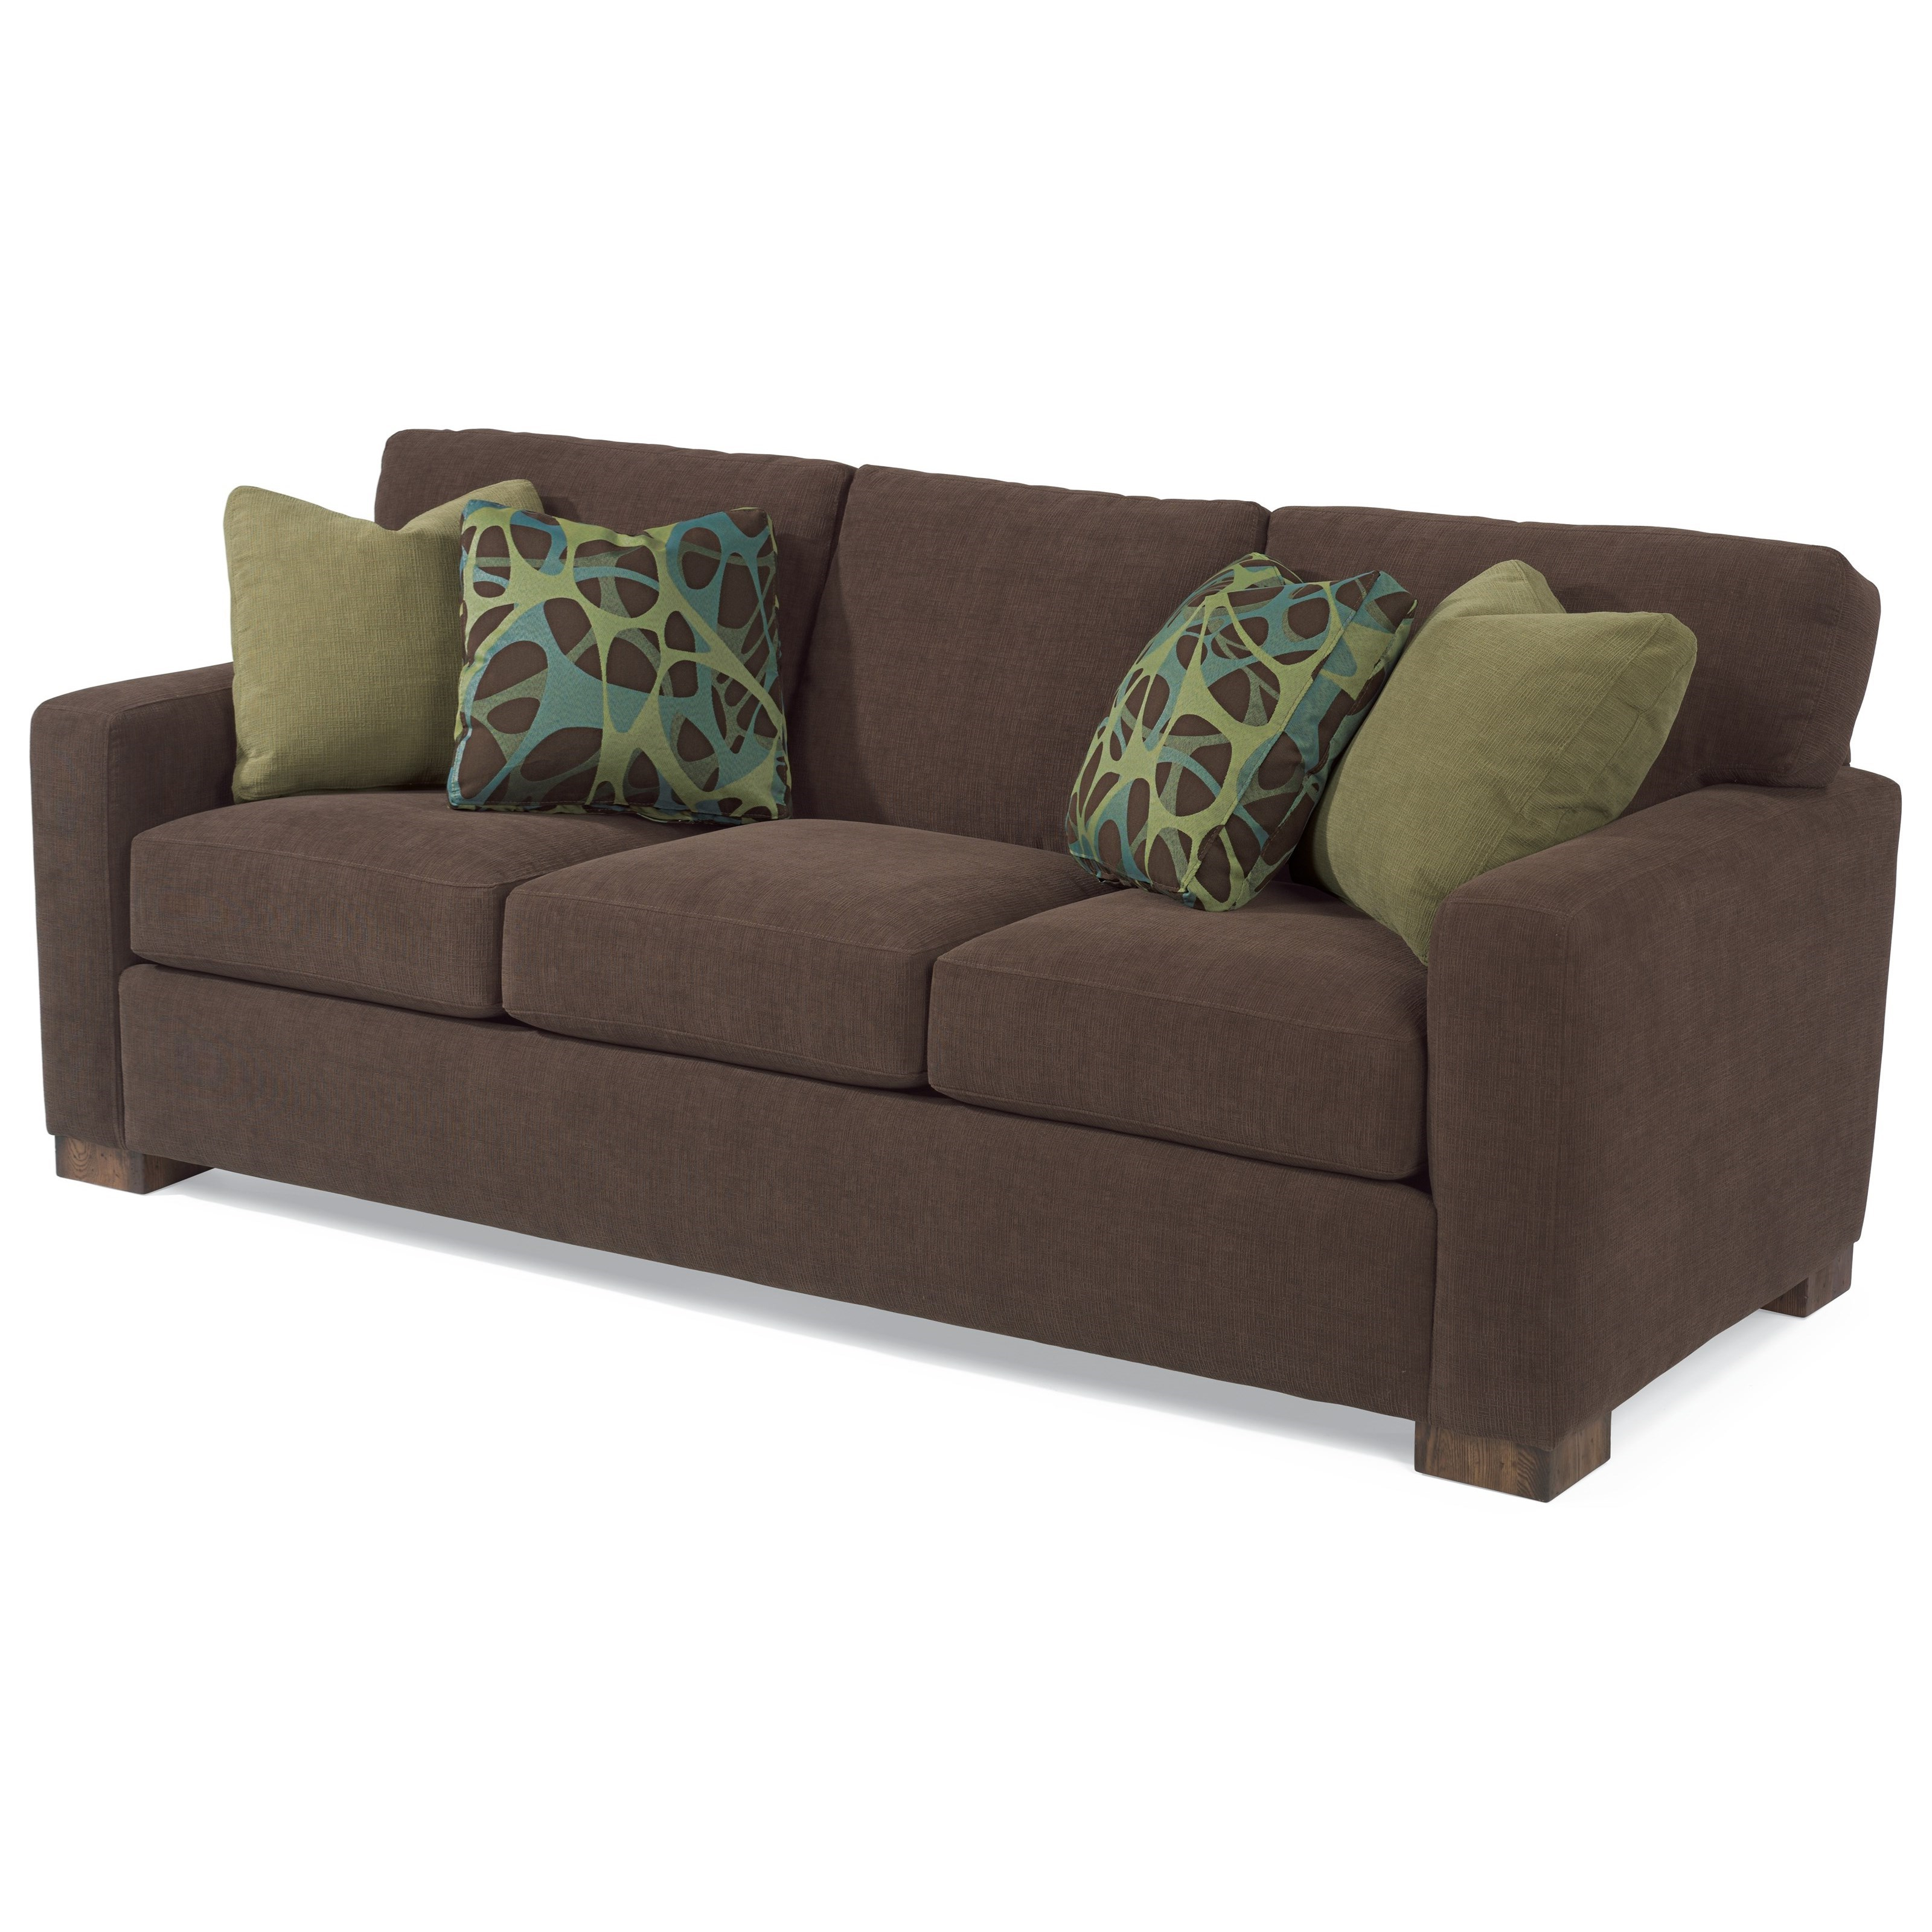 Bryant Loveseats With Cushion In Most Popular Flexsteel Bryant 7399 31 Contemporary Sofa With Loose Pillow (View 4 of 20)